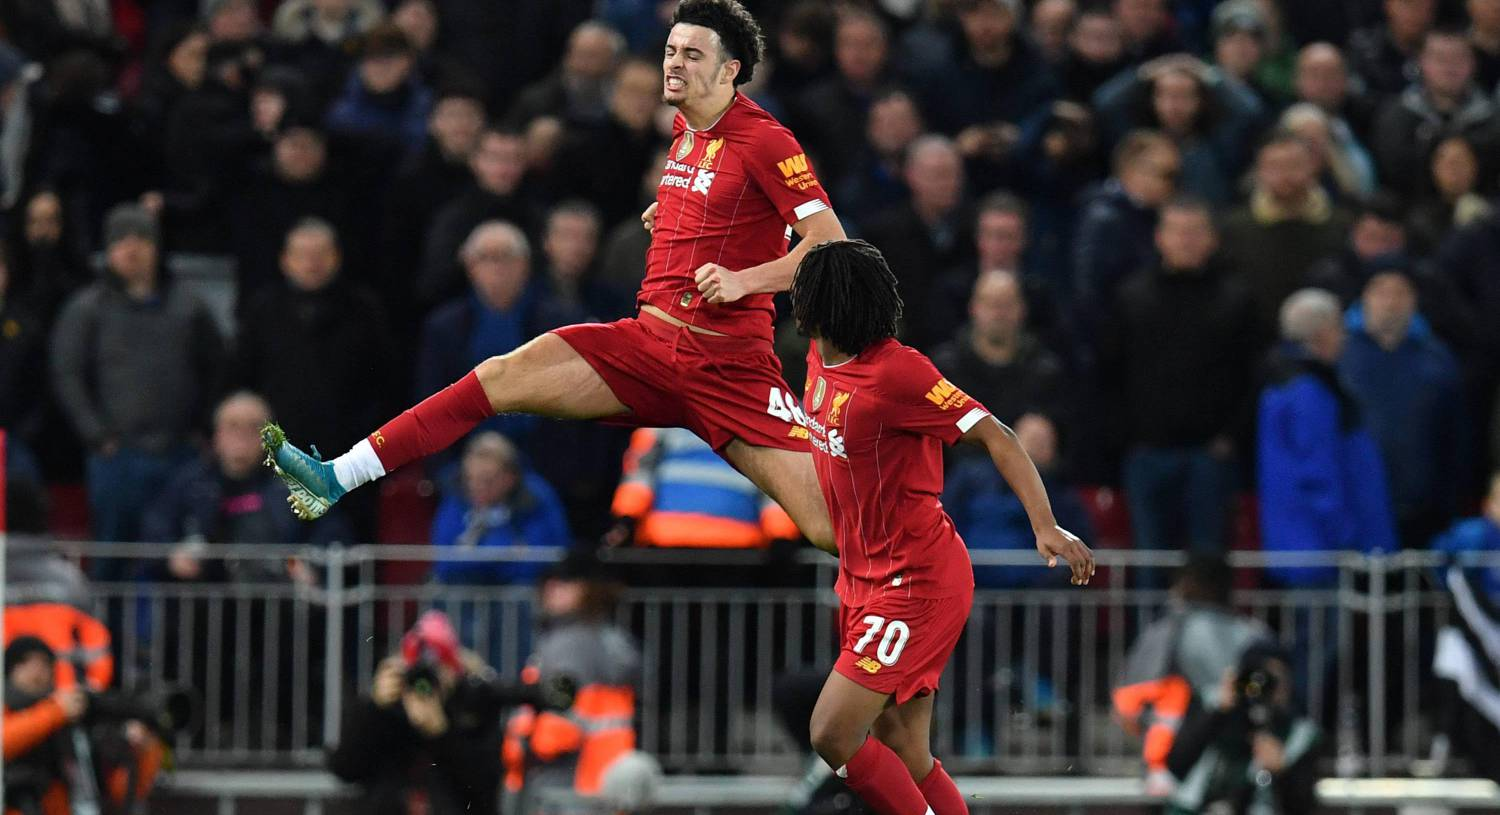 Liverpool's likely lads: The next generation who could help prevent another 30-year title wait